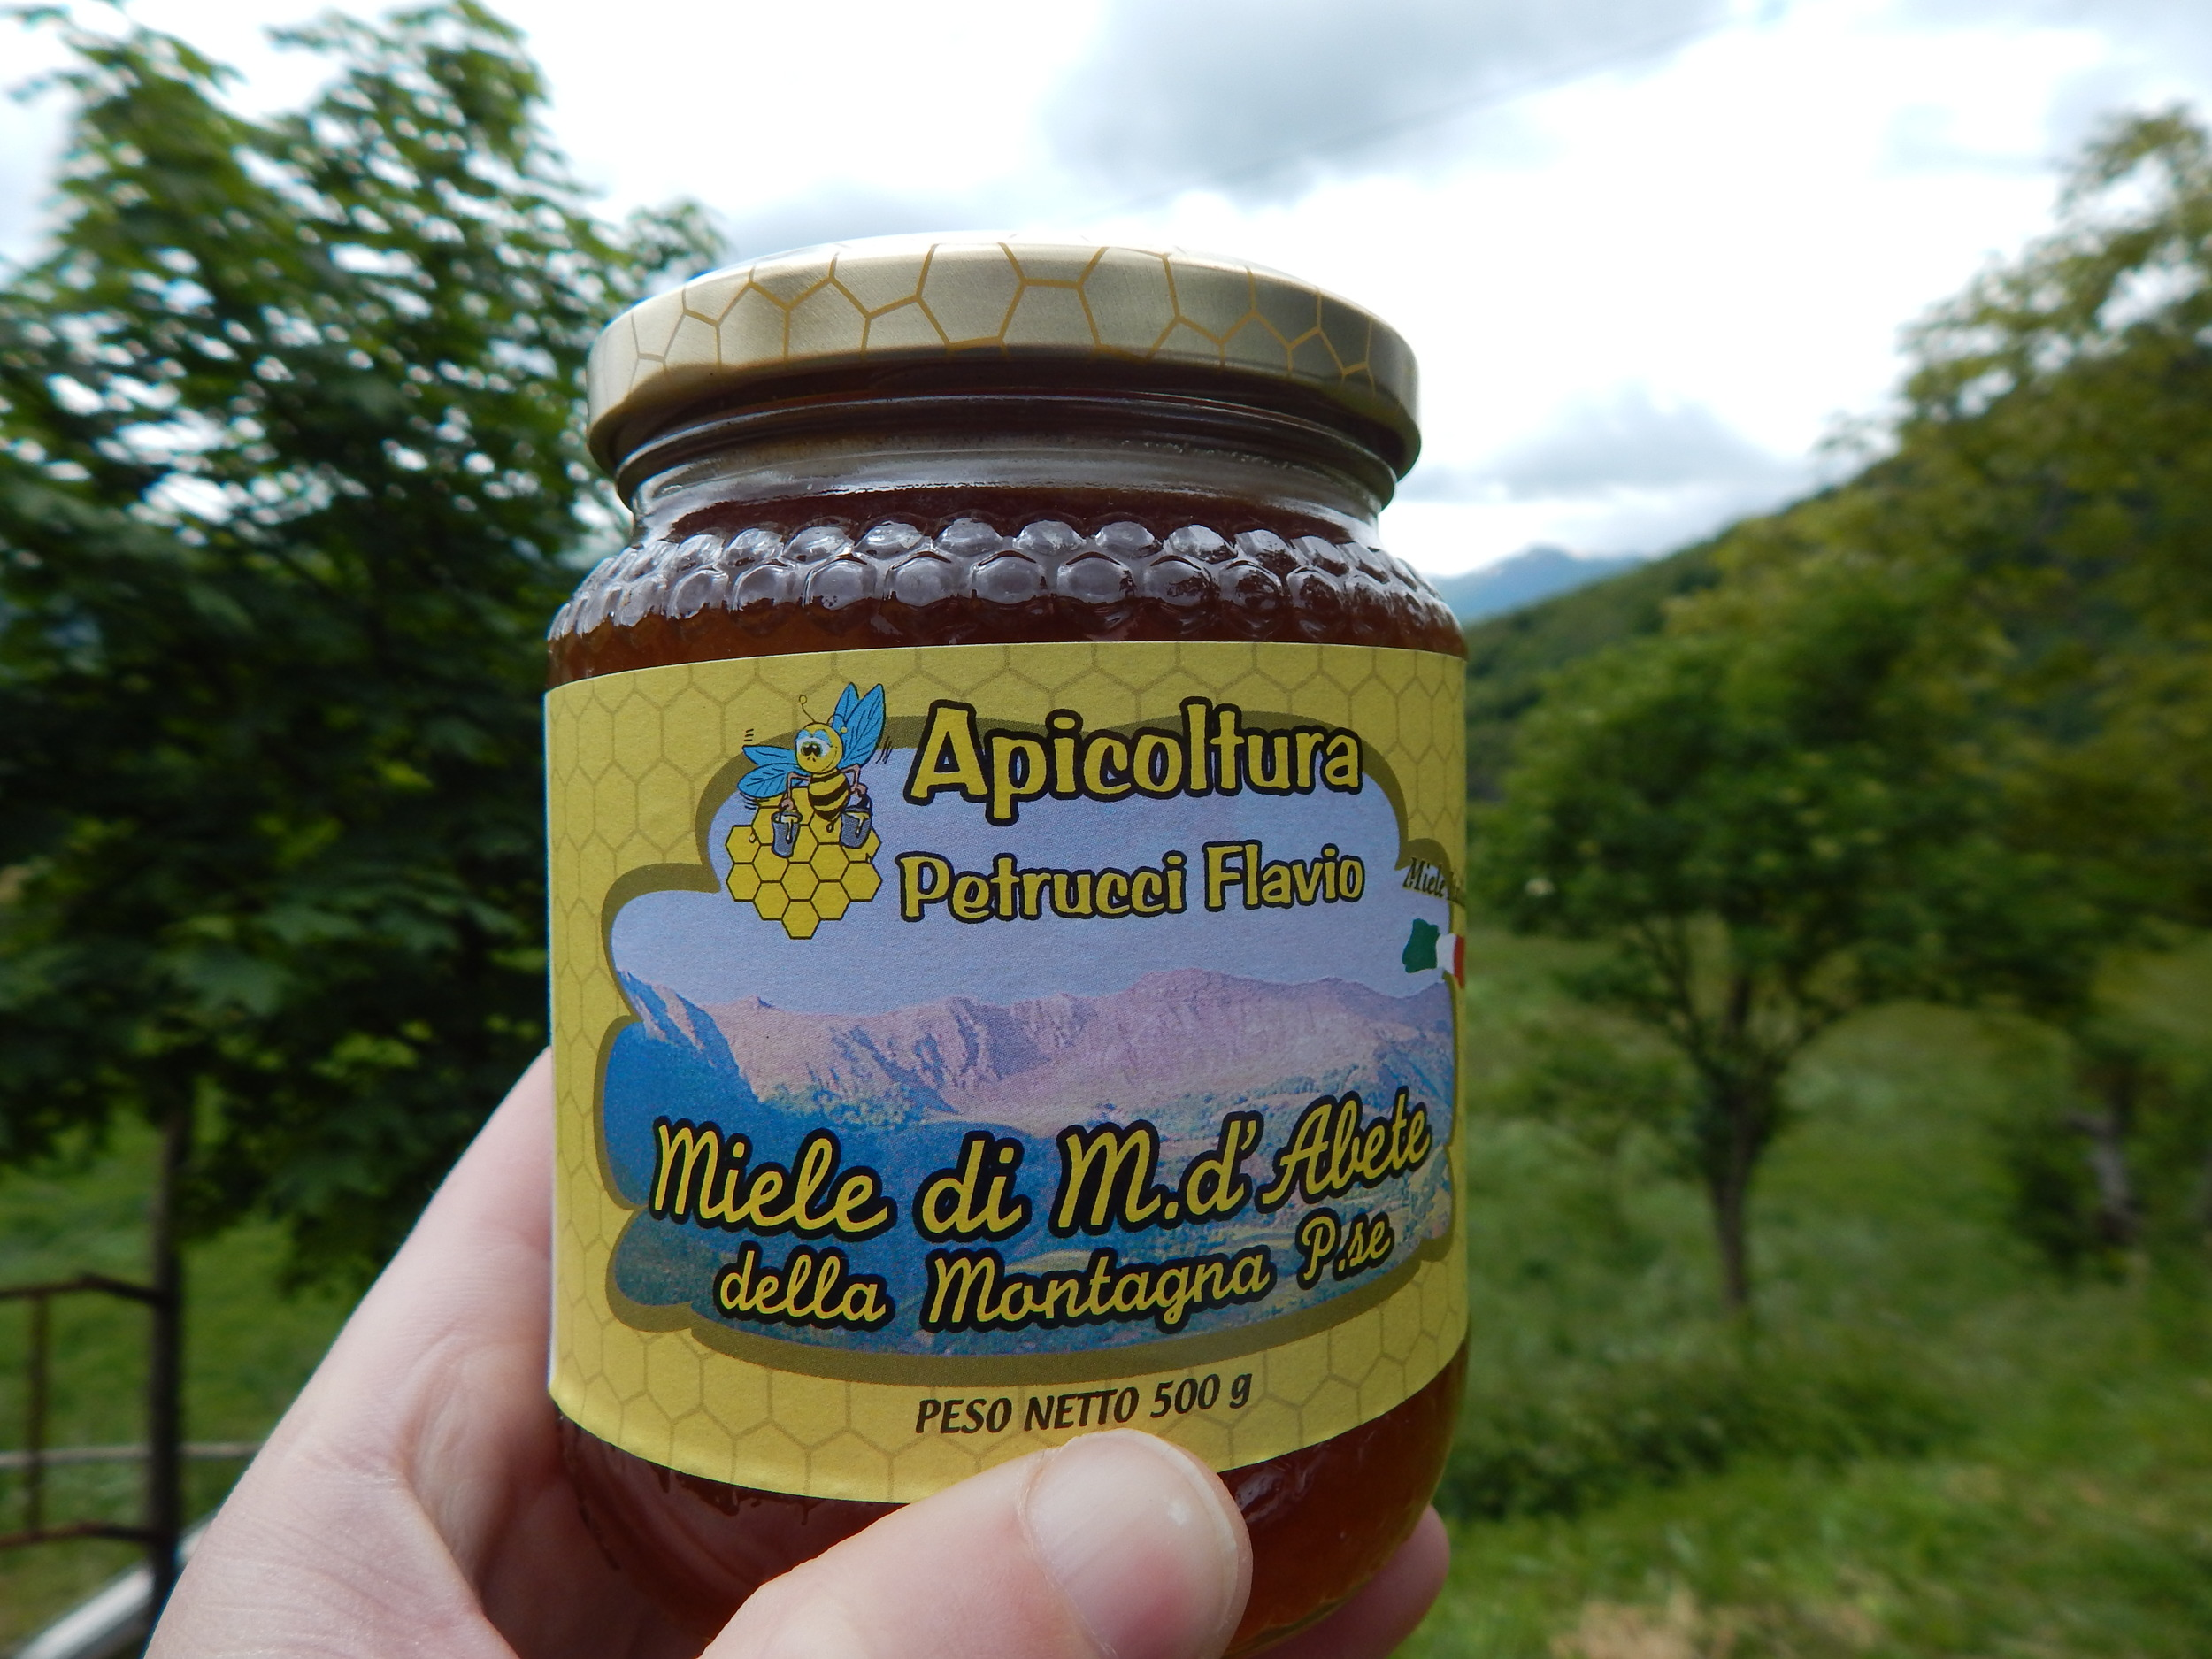 Bug Poo Honey, finest vintage, in its provenance in the Italian alps